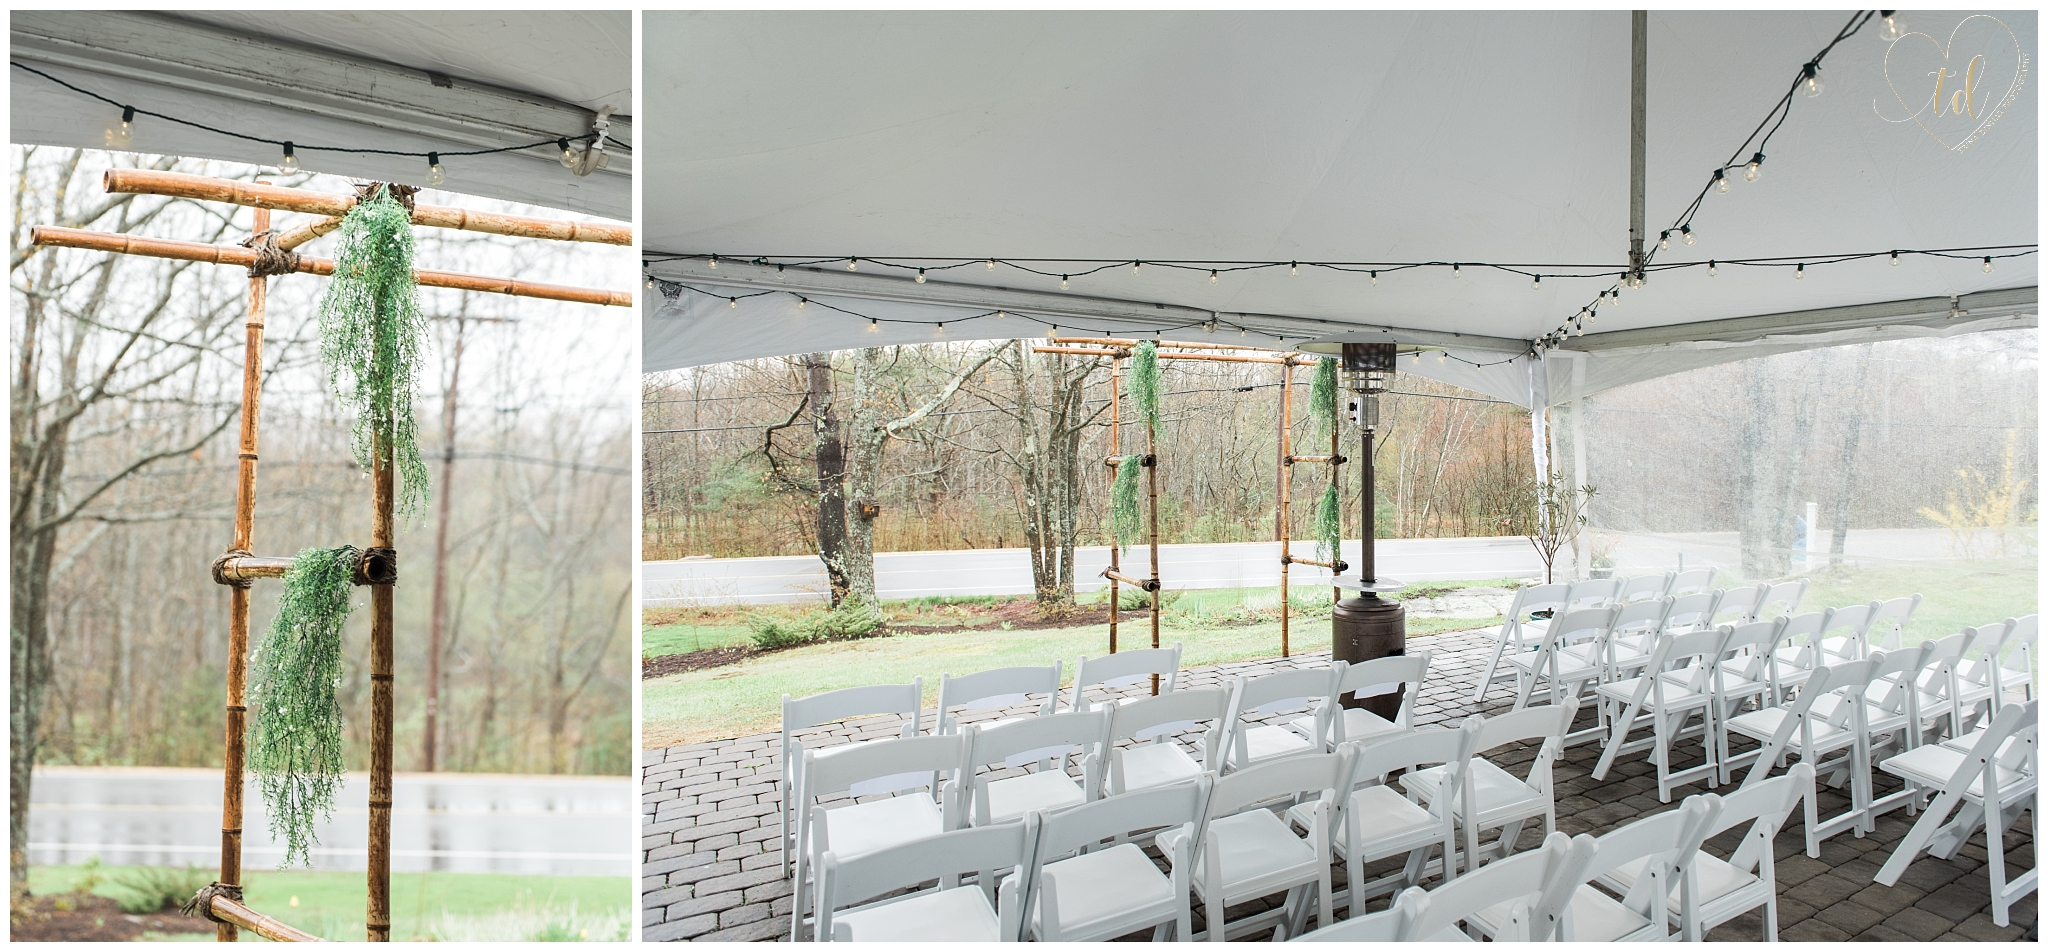 Outdoor tented Maine wedding ceremony in Kennebunkport.